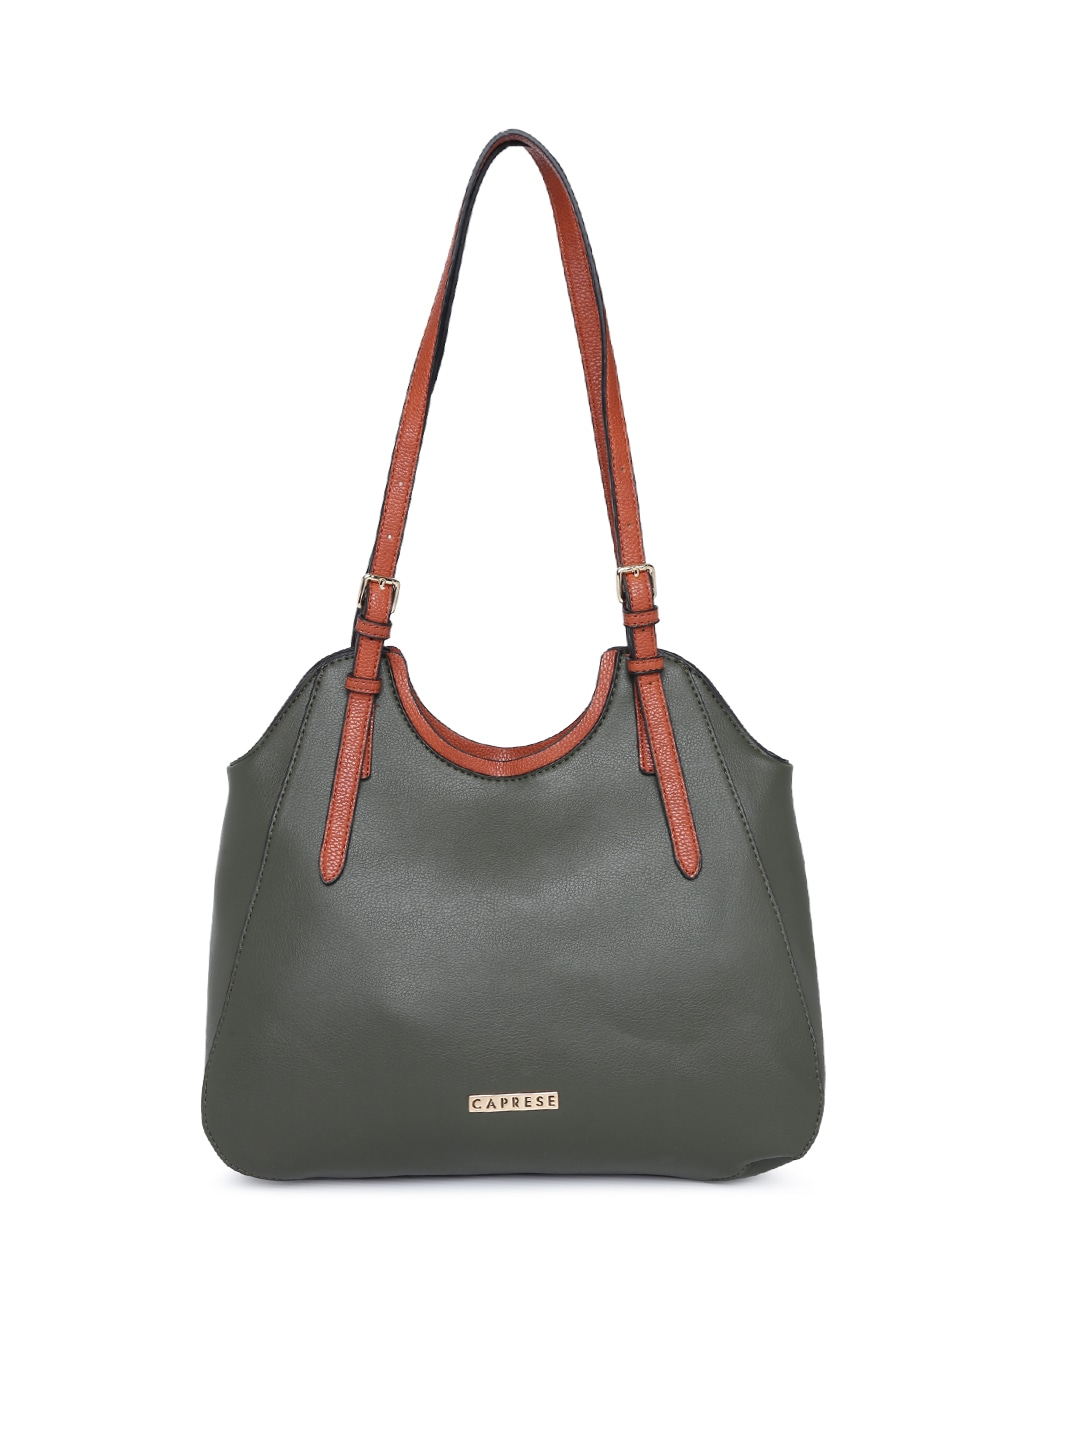 Olive Green Handbags - Buy Olive Green Handbags online in India 91f31338421a9